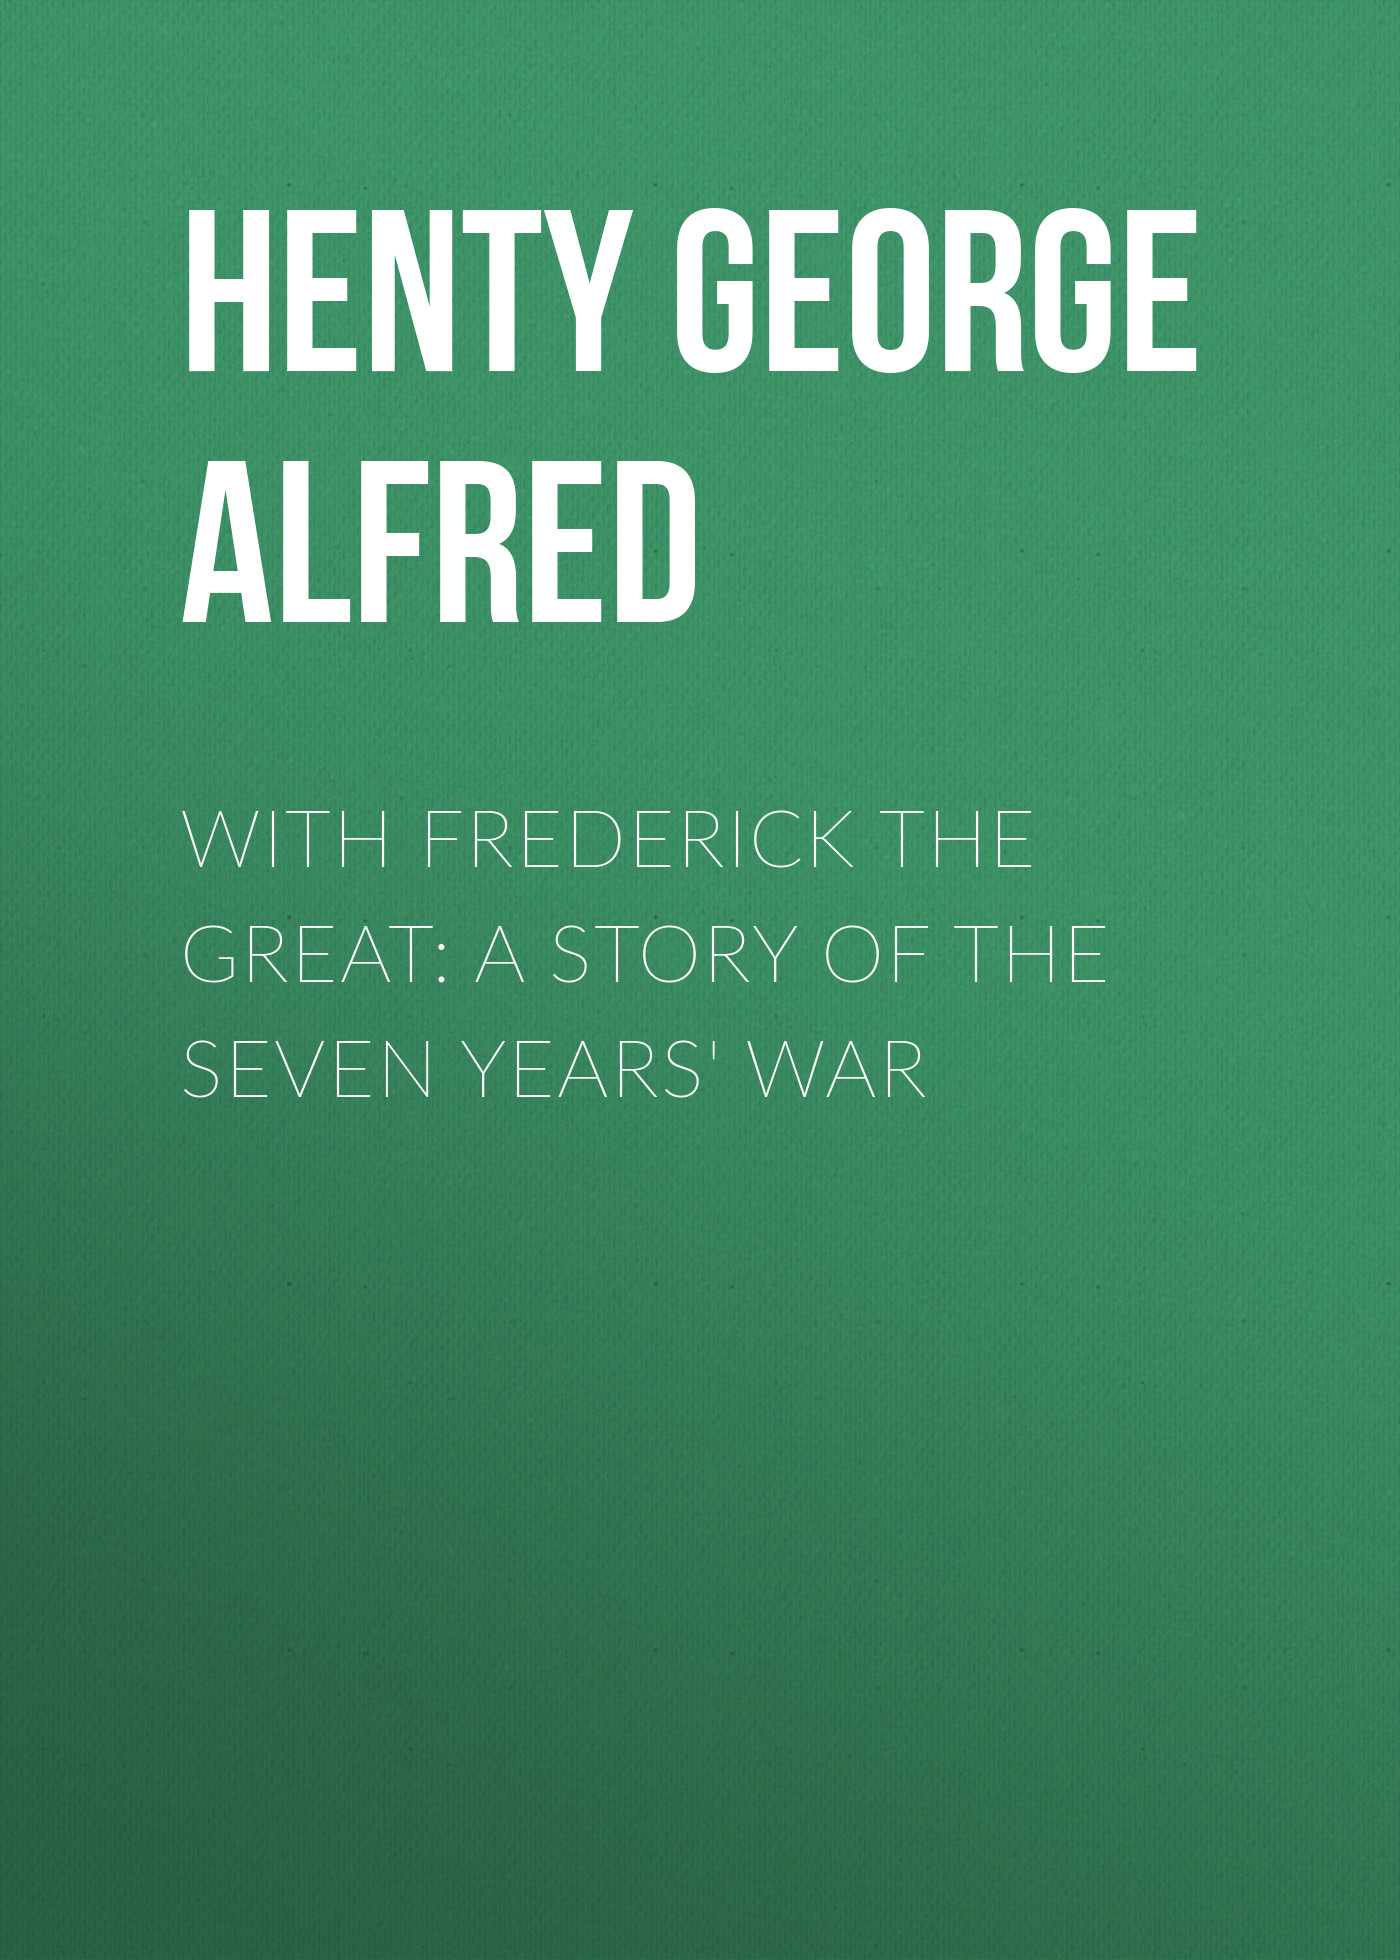 Henty George Alfred With Frederick the Great: A Story of the Seven Years' War george alfred henty with lee in virginia a story of the american civil war